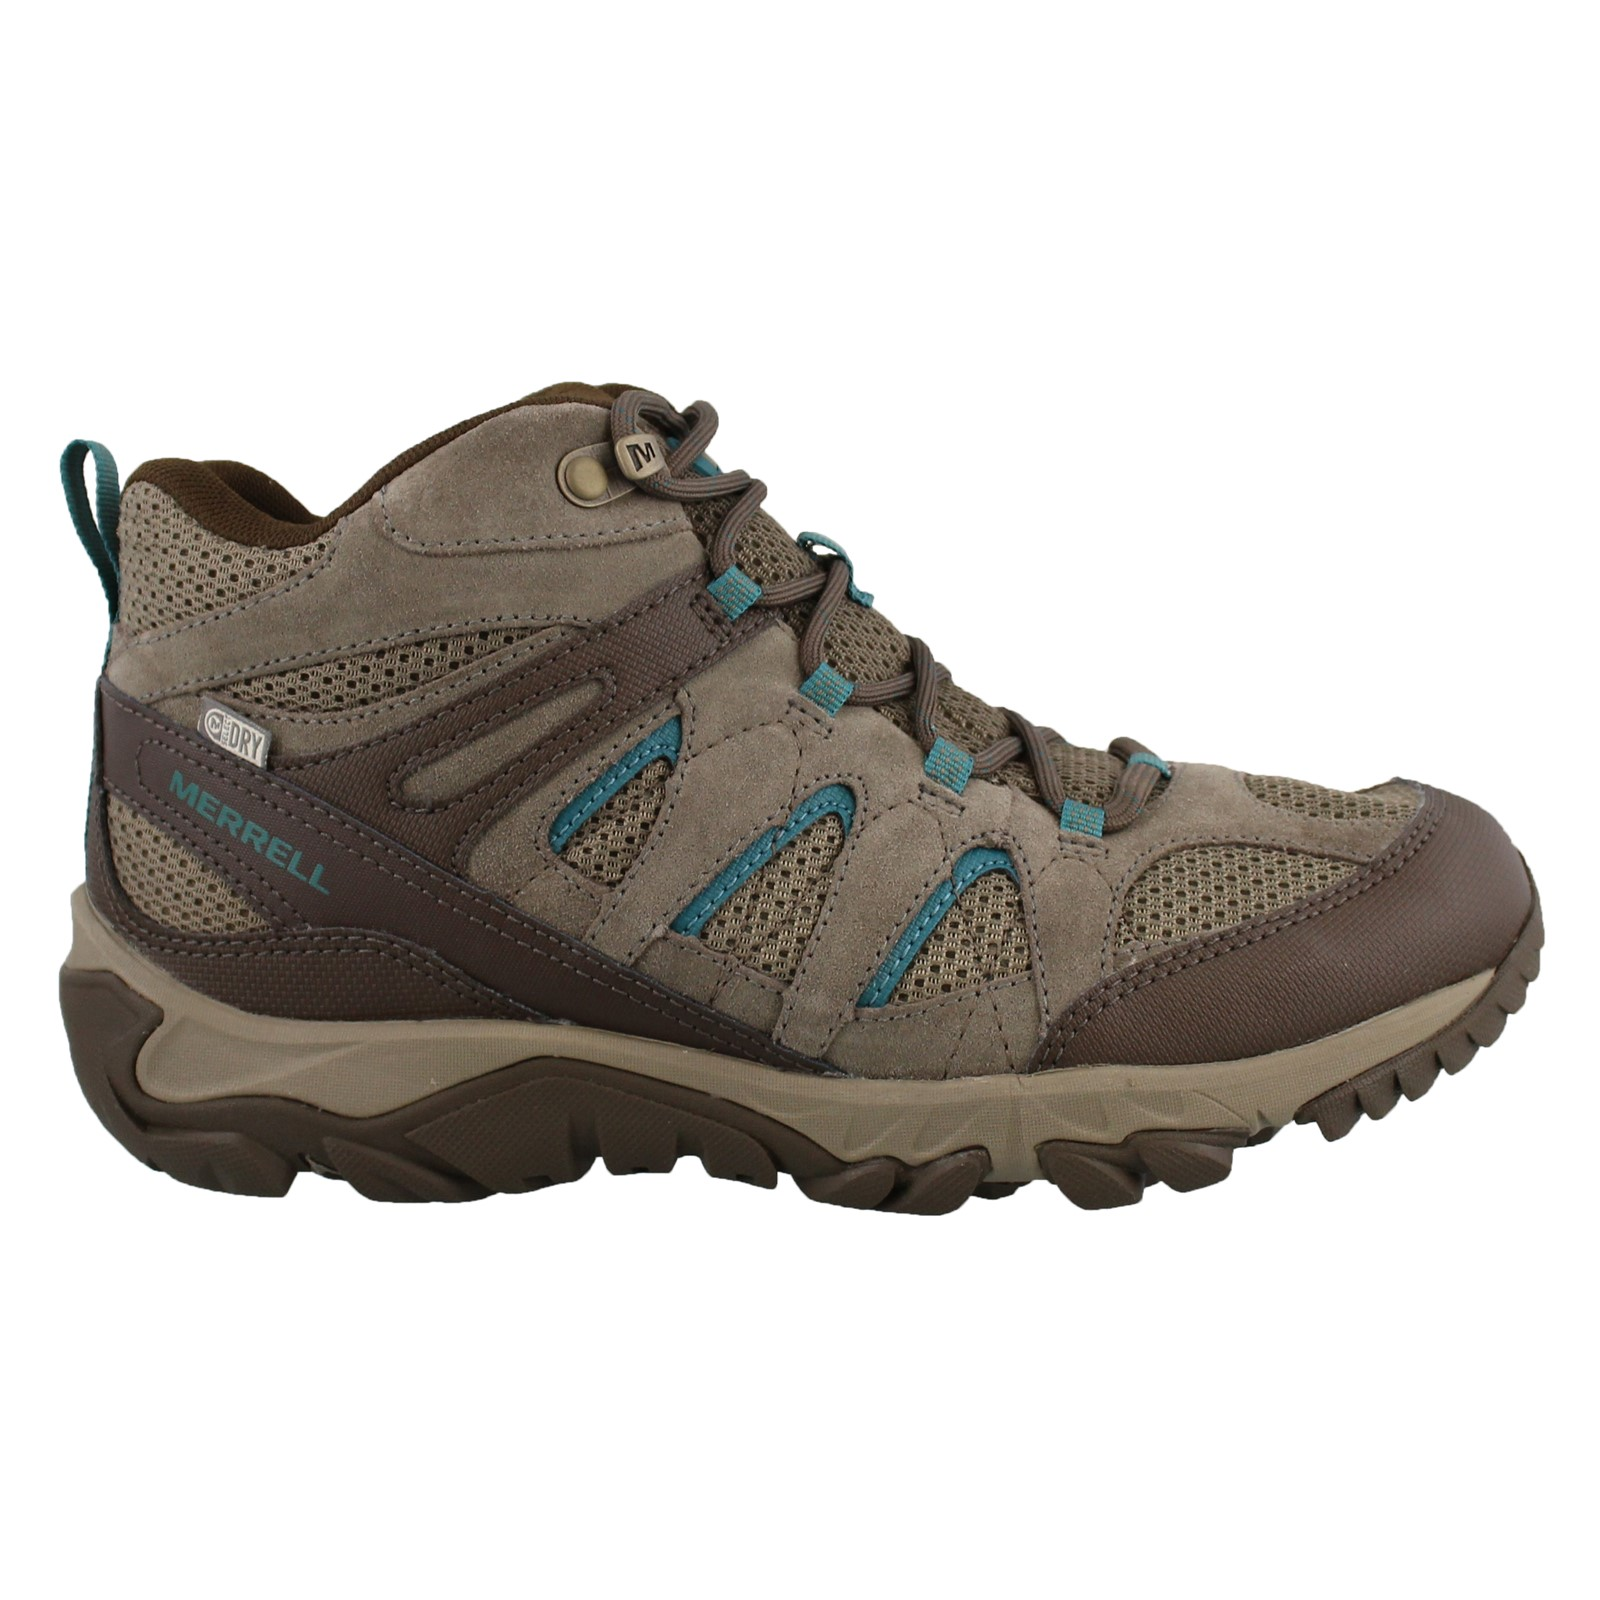 Women's Merrell, Outmost Ventilator Mid Hiking Sneakers